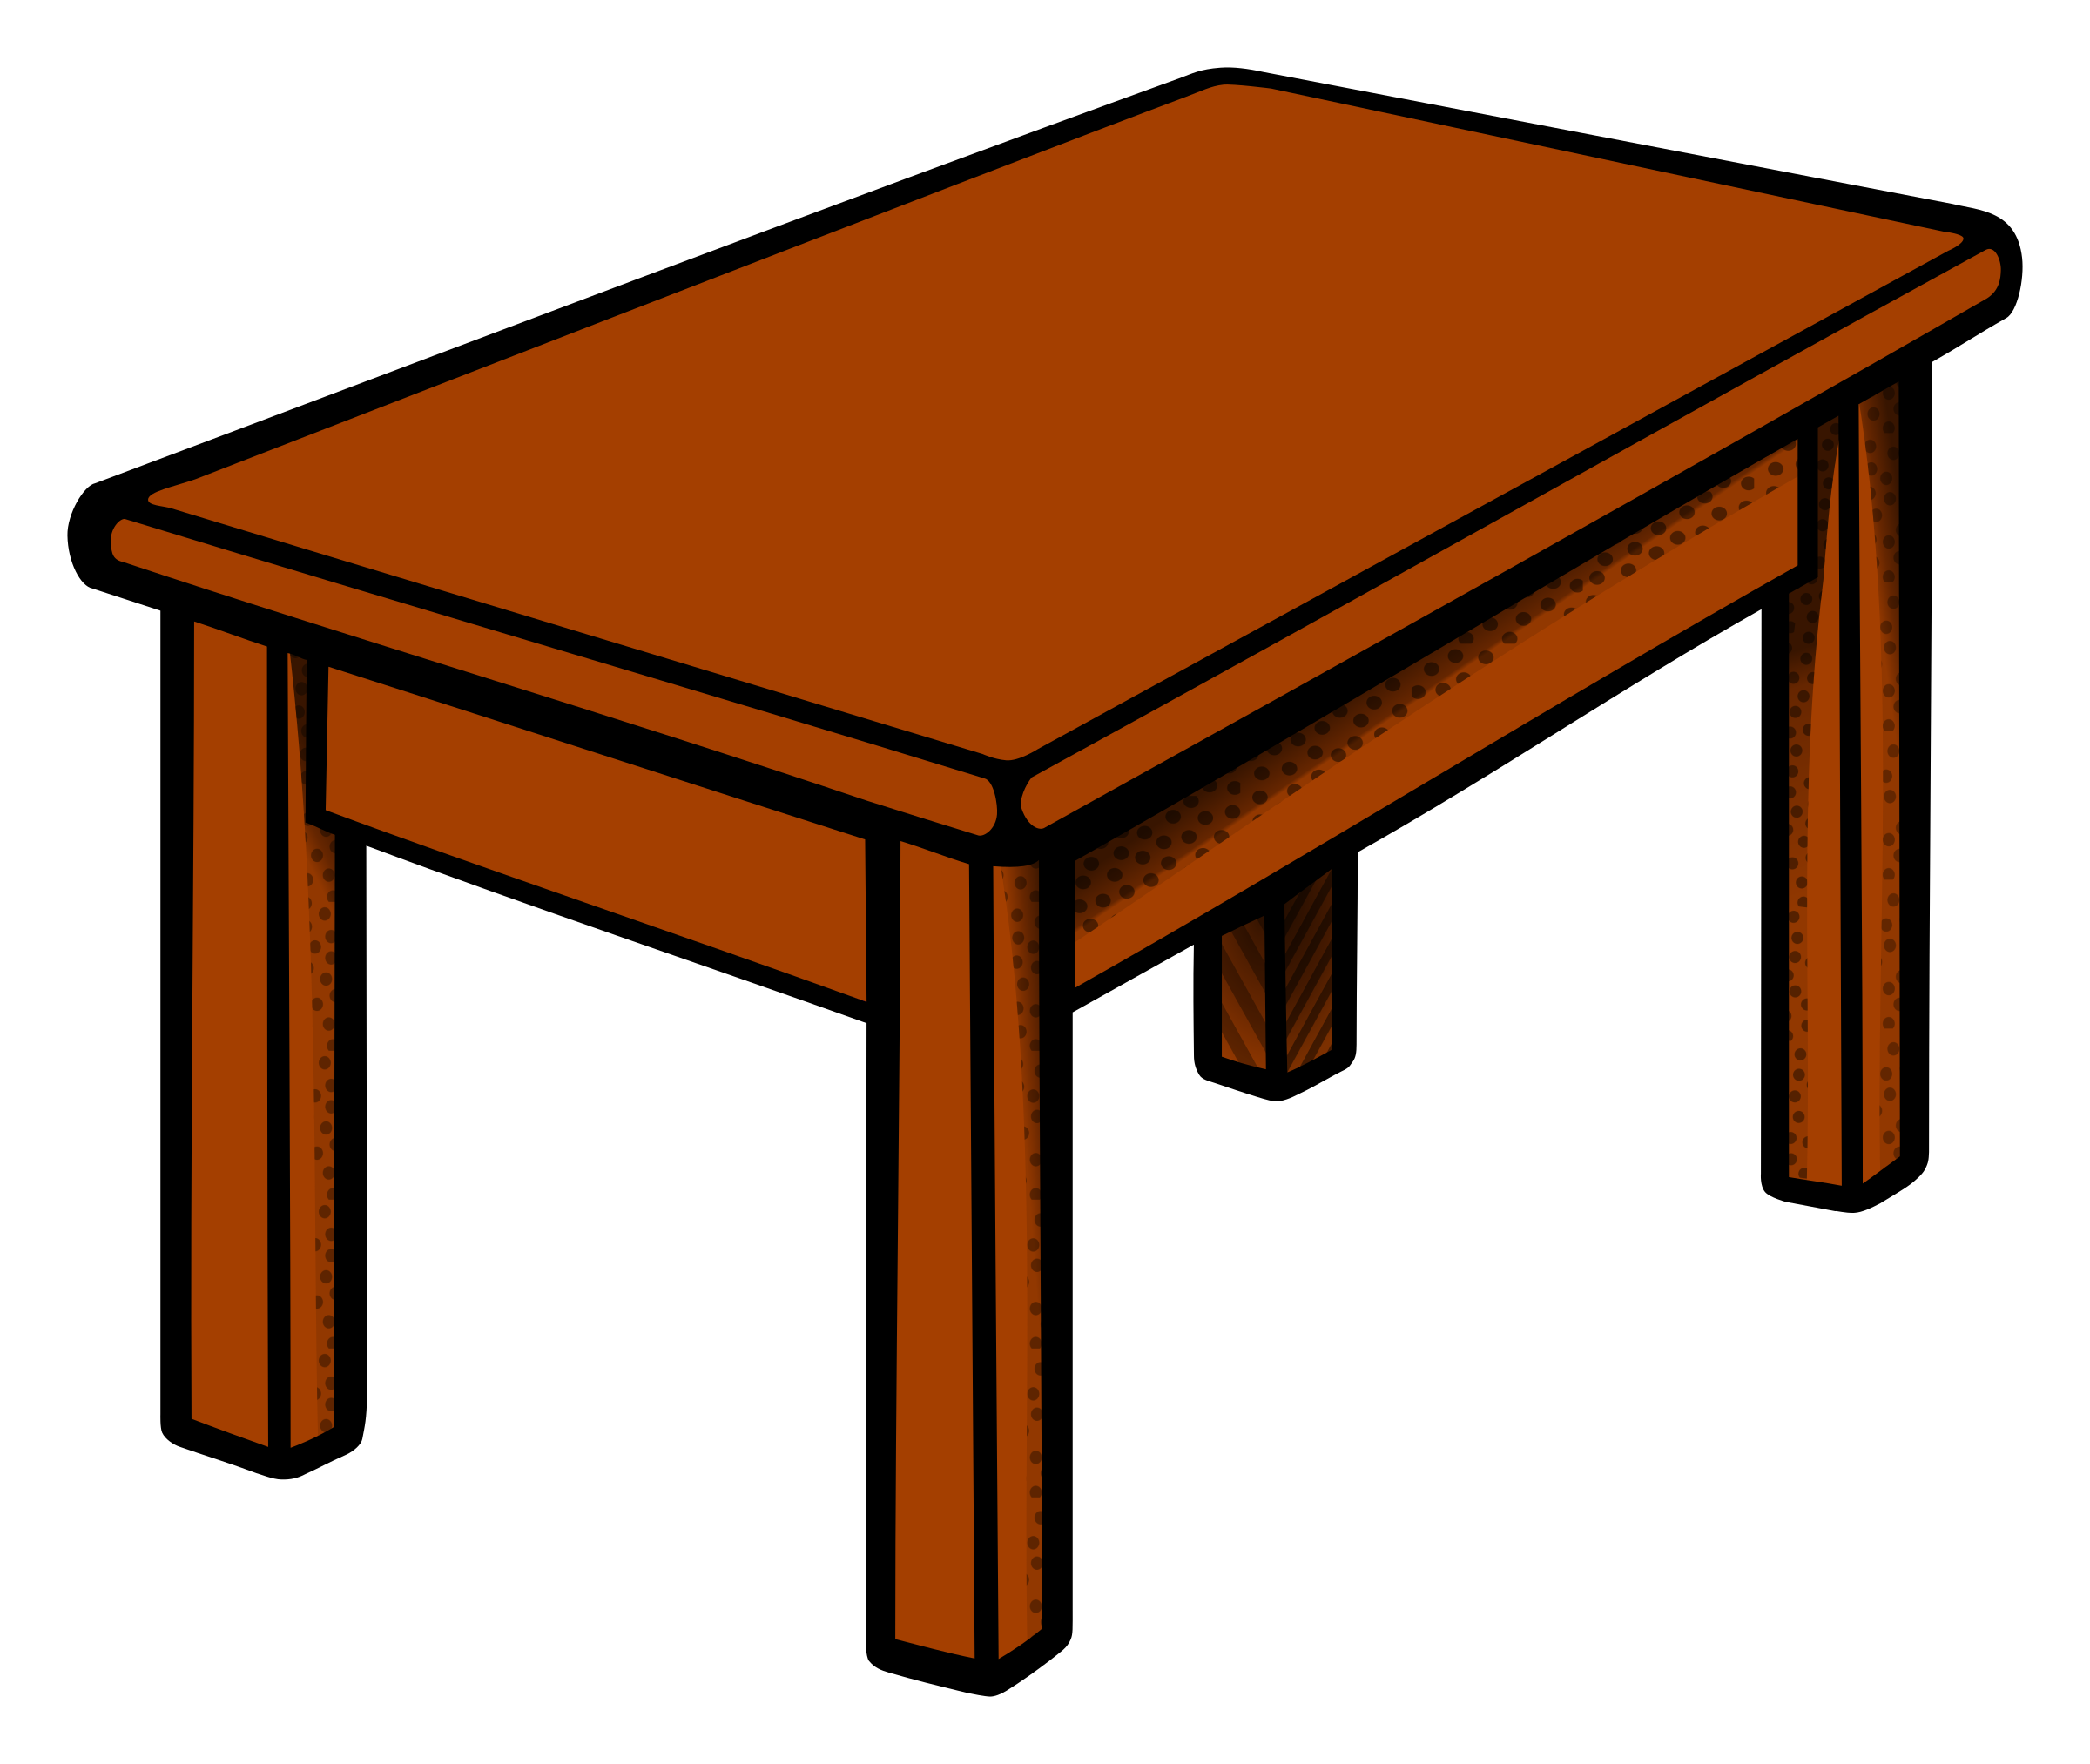 school table clipart 6 | Clipart Station for School Table Clipart  75sfw